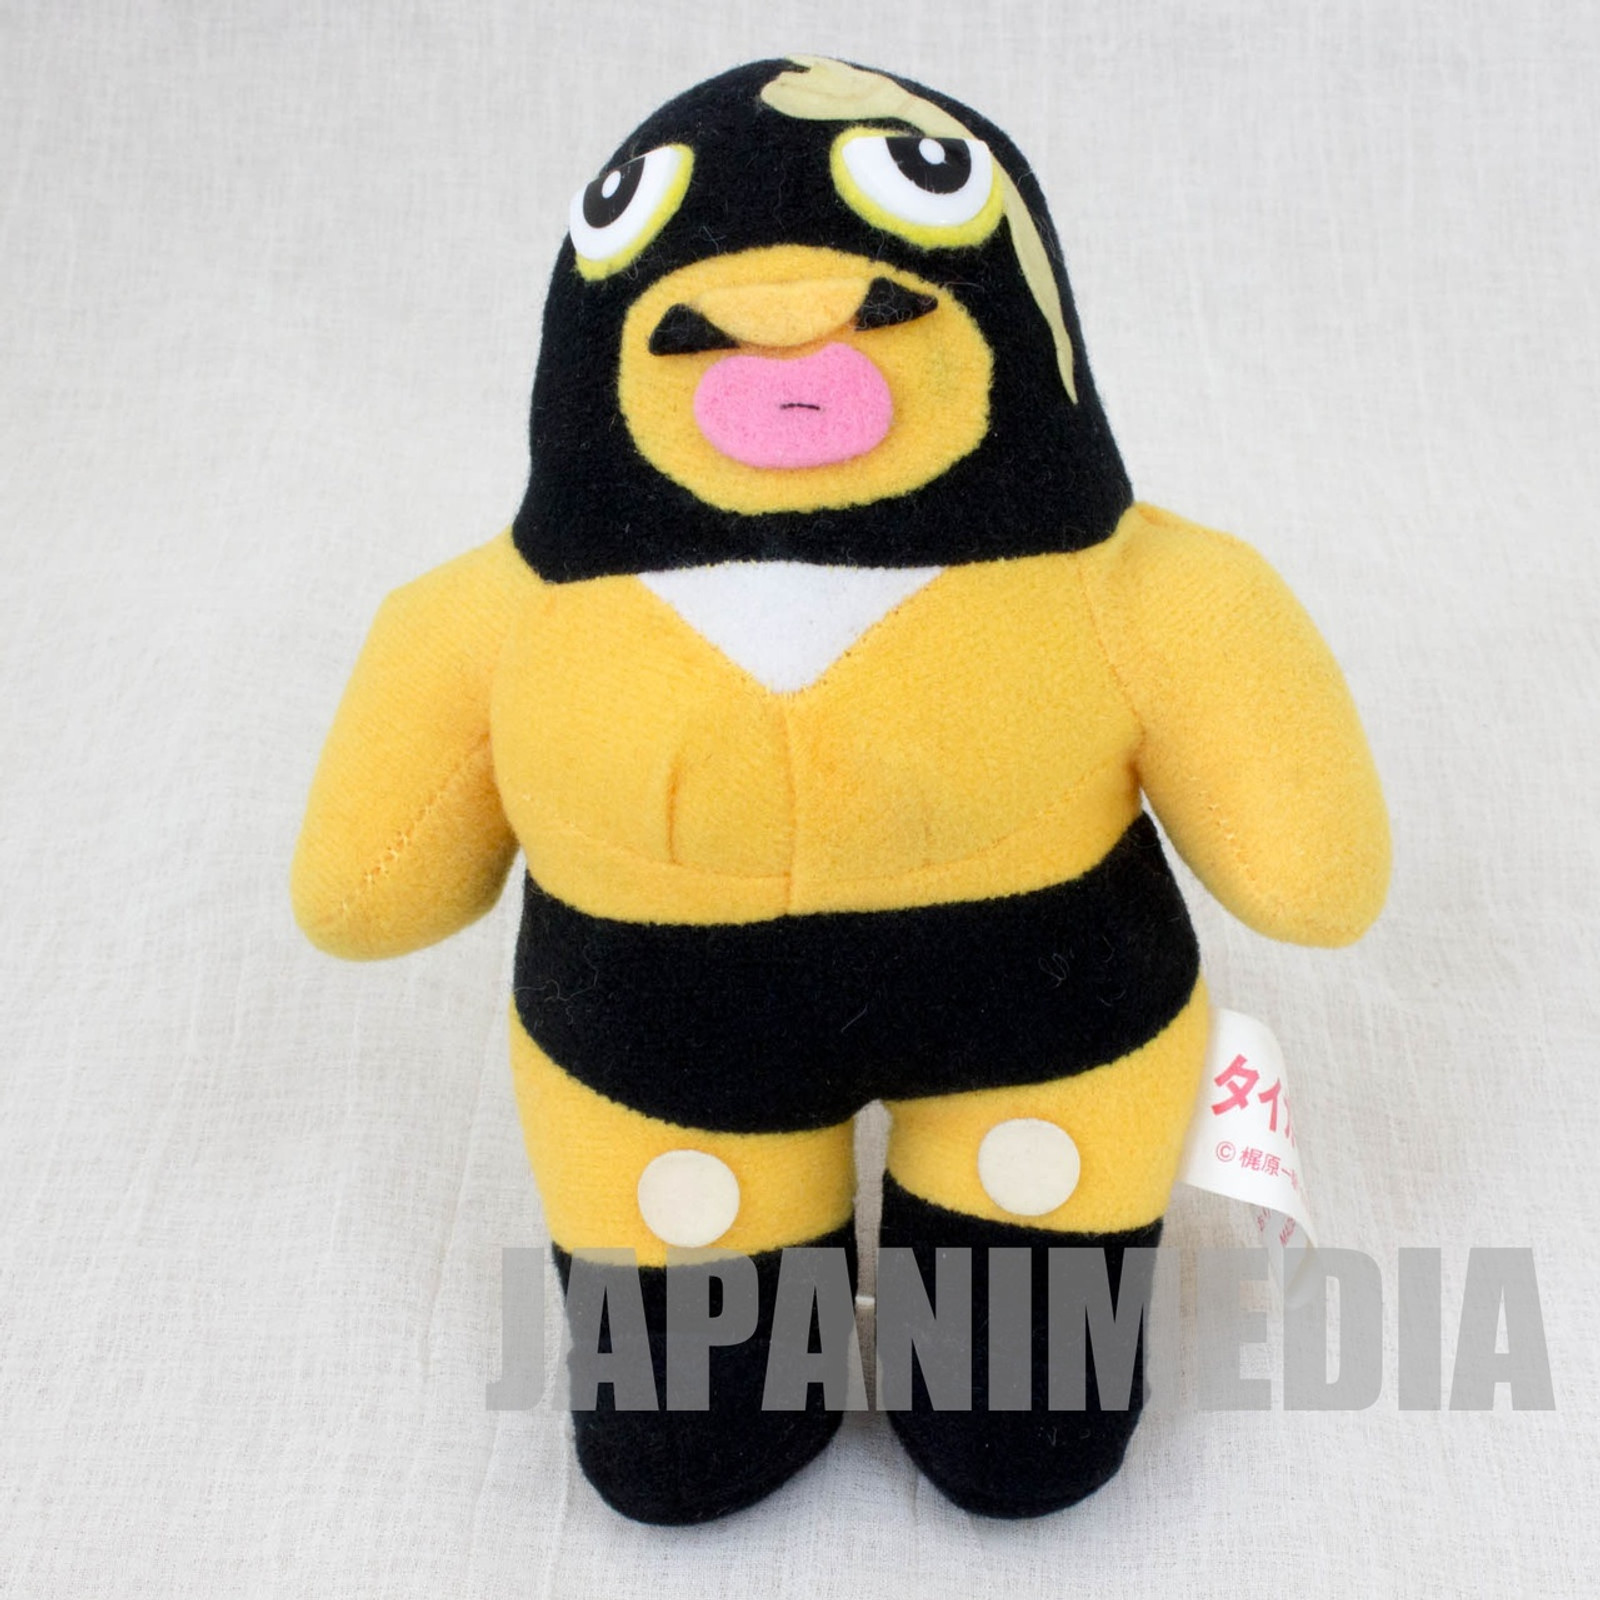 Tiger Mask Black Python Plush Doll JAPAN ANIME MANGA Pro Wrestling